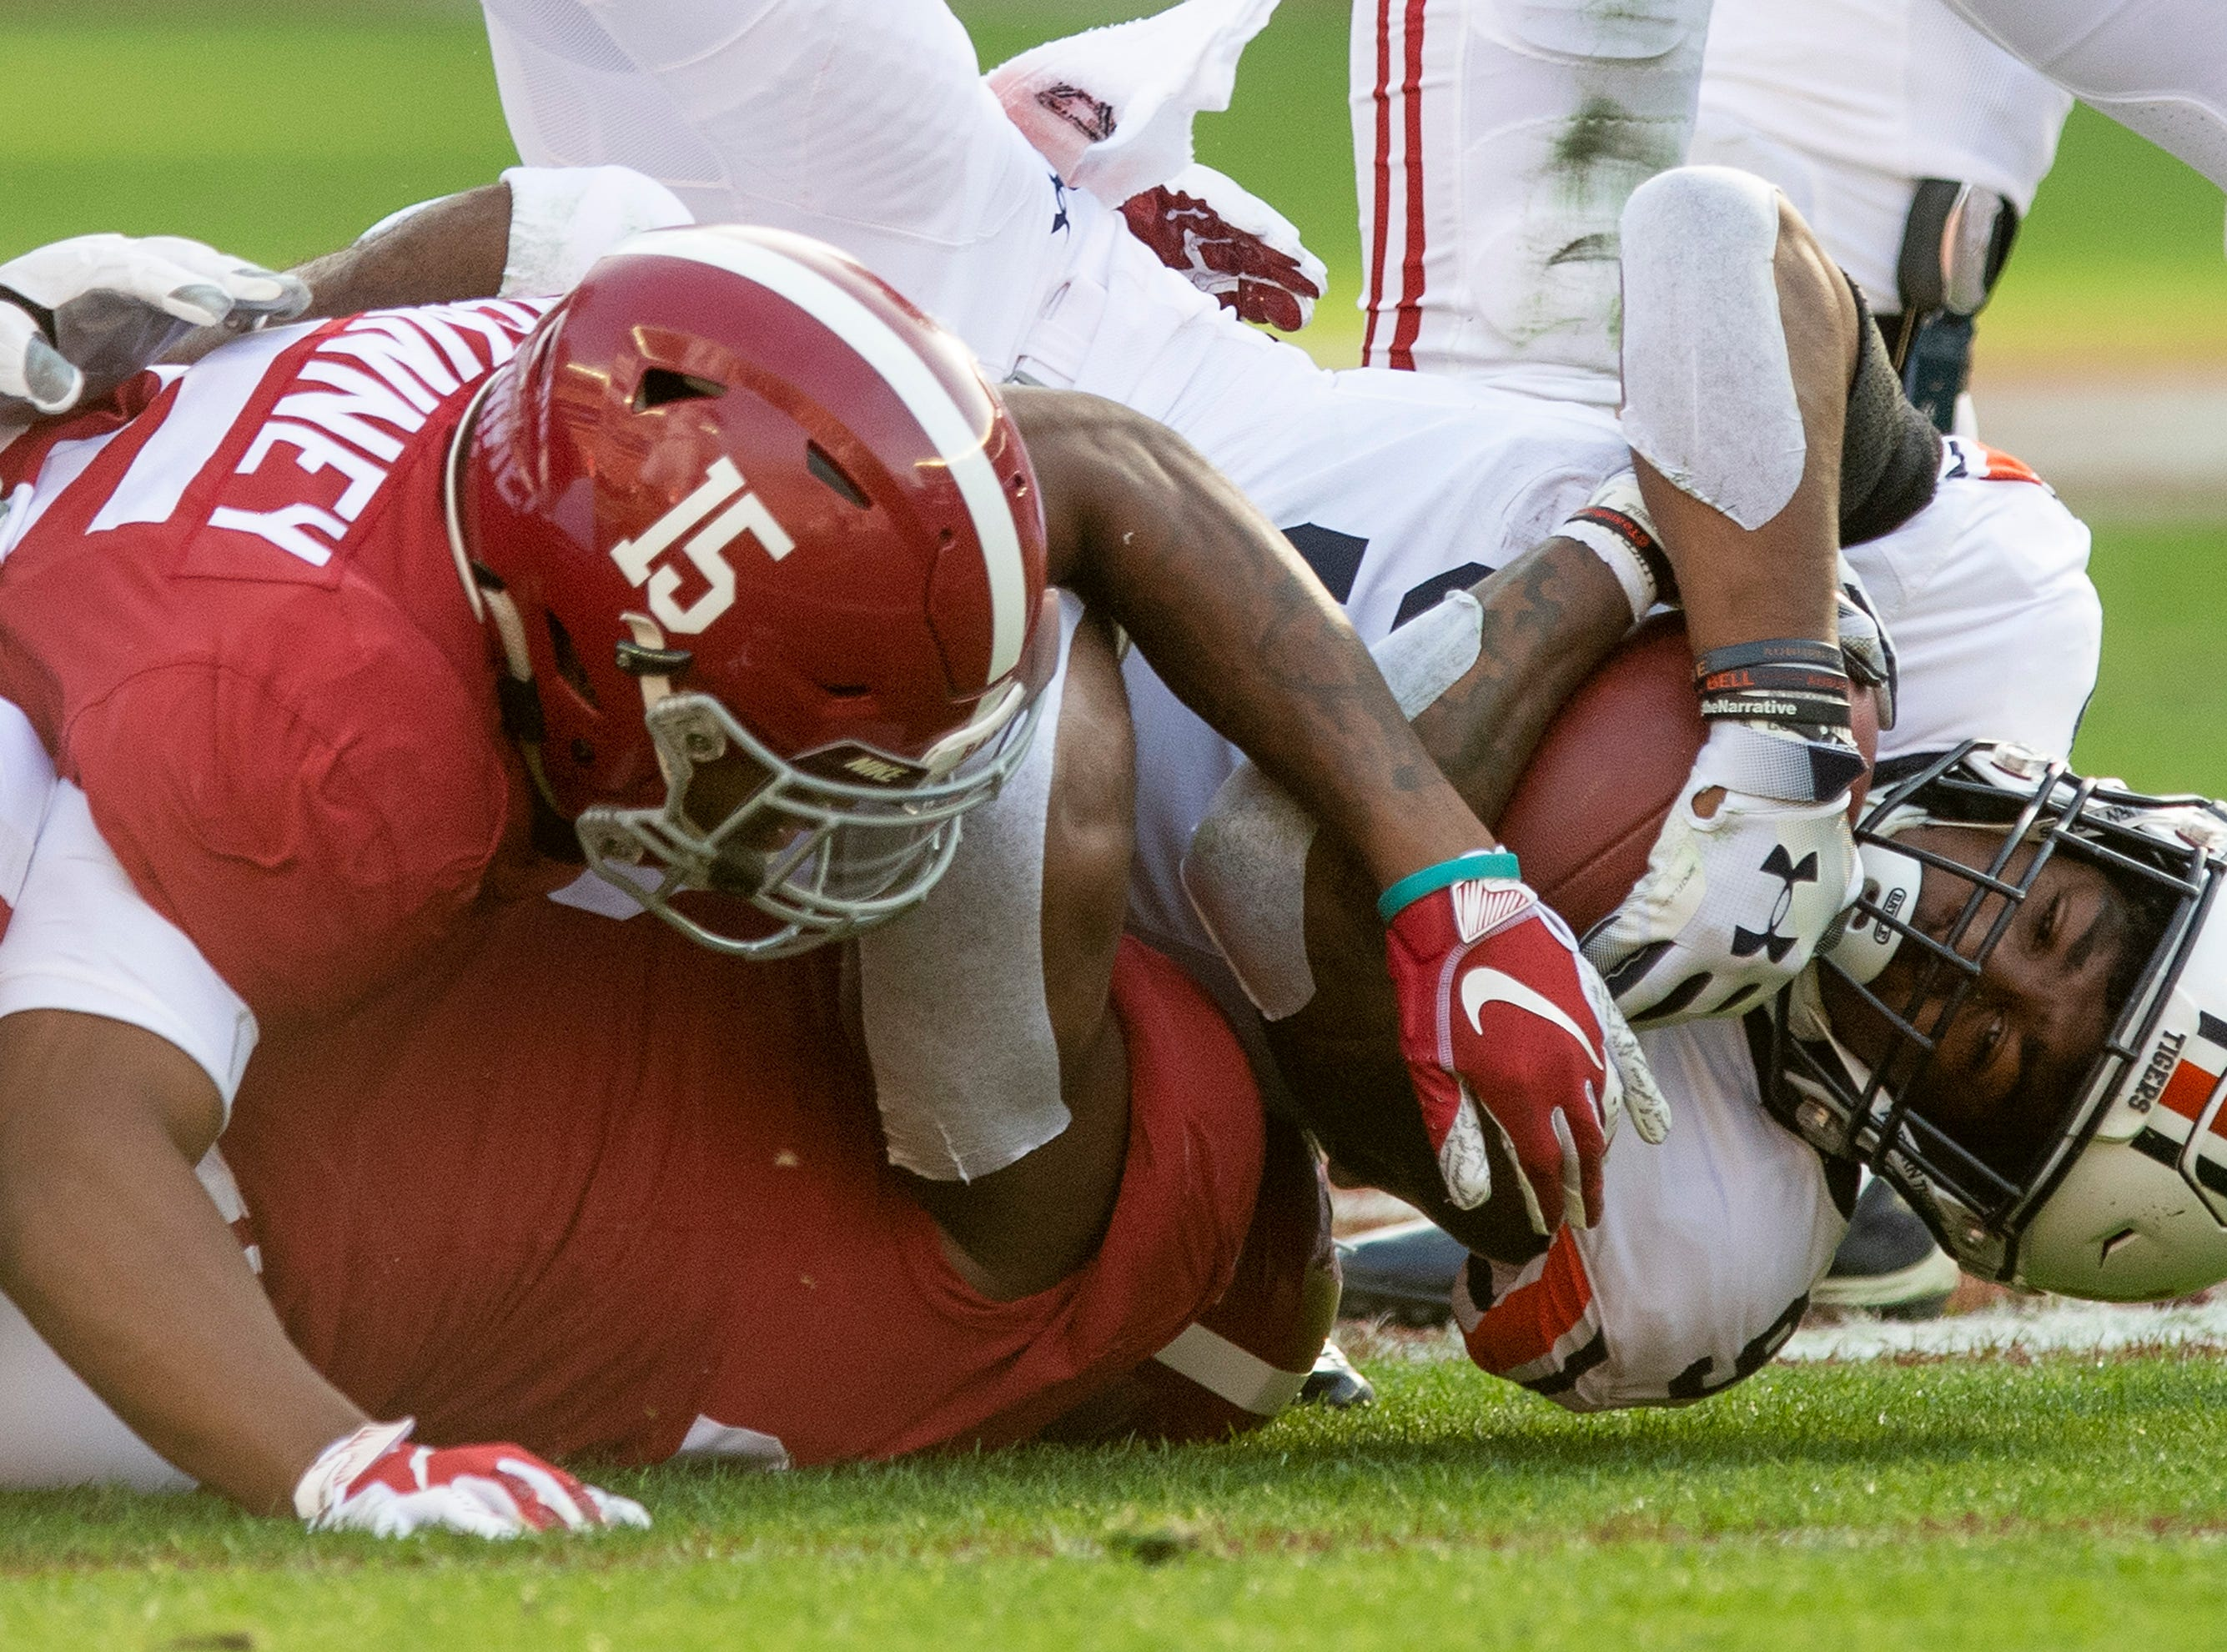 Auburn running back Kam Martin (9) is stopped by Alabama defensive lineman Isaiah Buggs (49) and defensive back Xavier McKinney (15) in first half action during the Iron Bowl at Bryant-Denny Stadium in Tuscaloosa, Ala., on Saturday November 24, 2018.